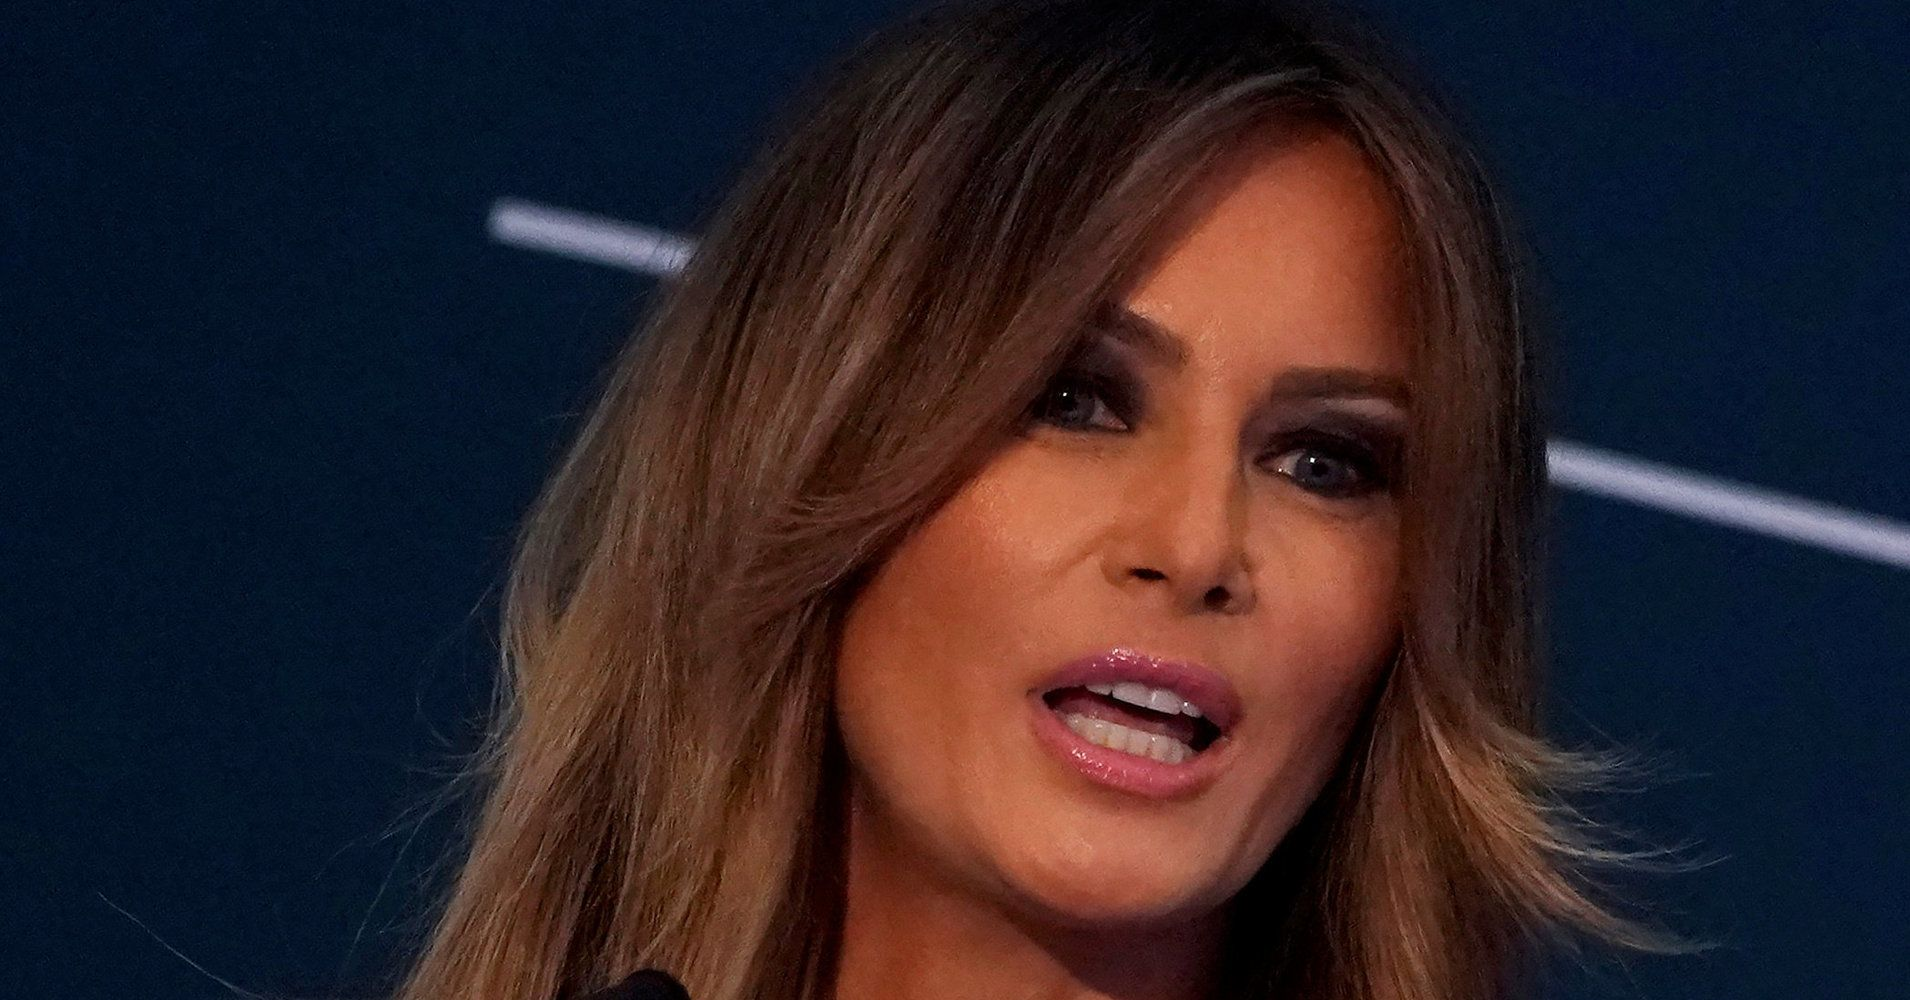 The First Lady S Spokeswoman Implied Some Of The Money Went To An Advance Team But There Were Separate Additional Charges Fo Trump Hotel Toronto Travel Trump